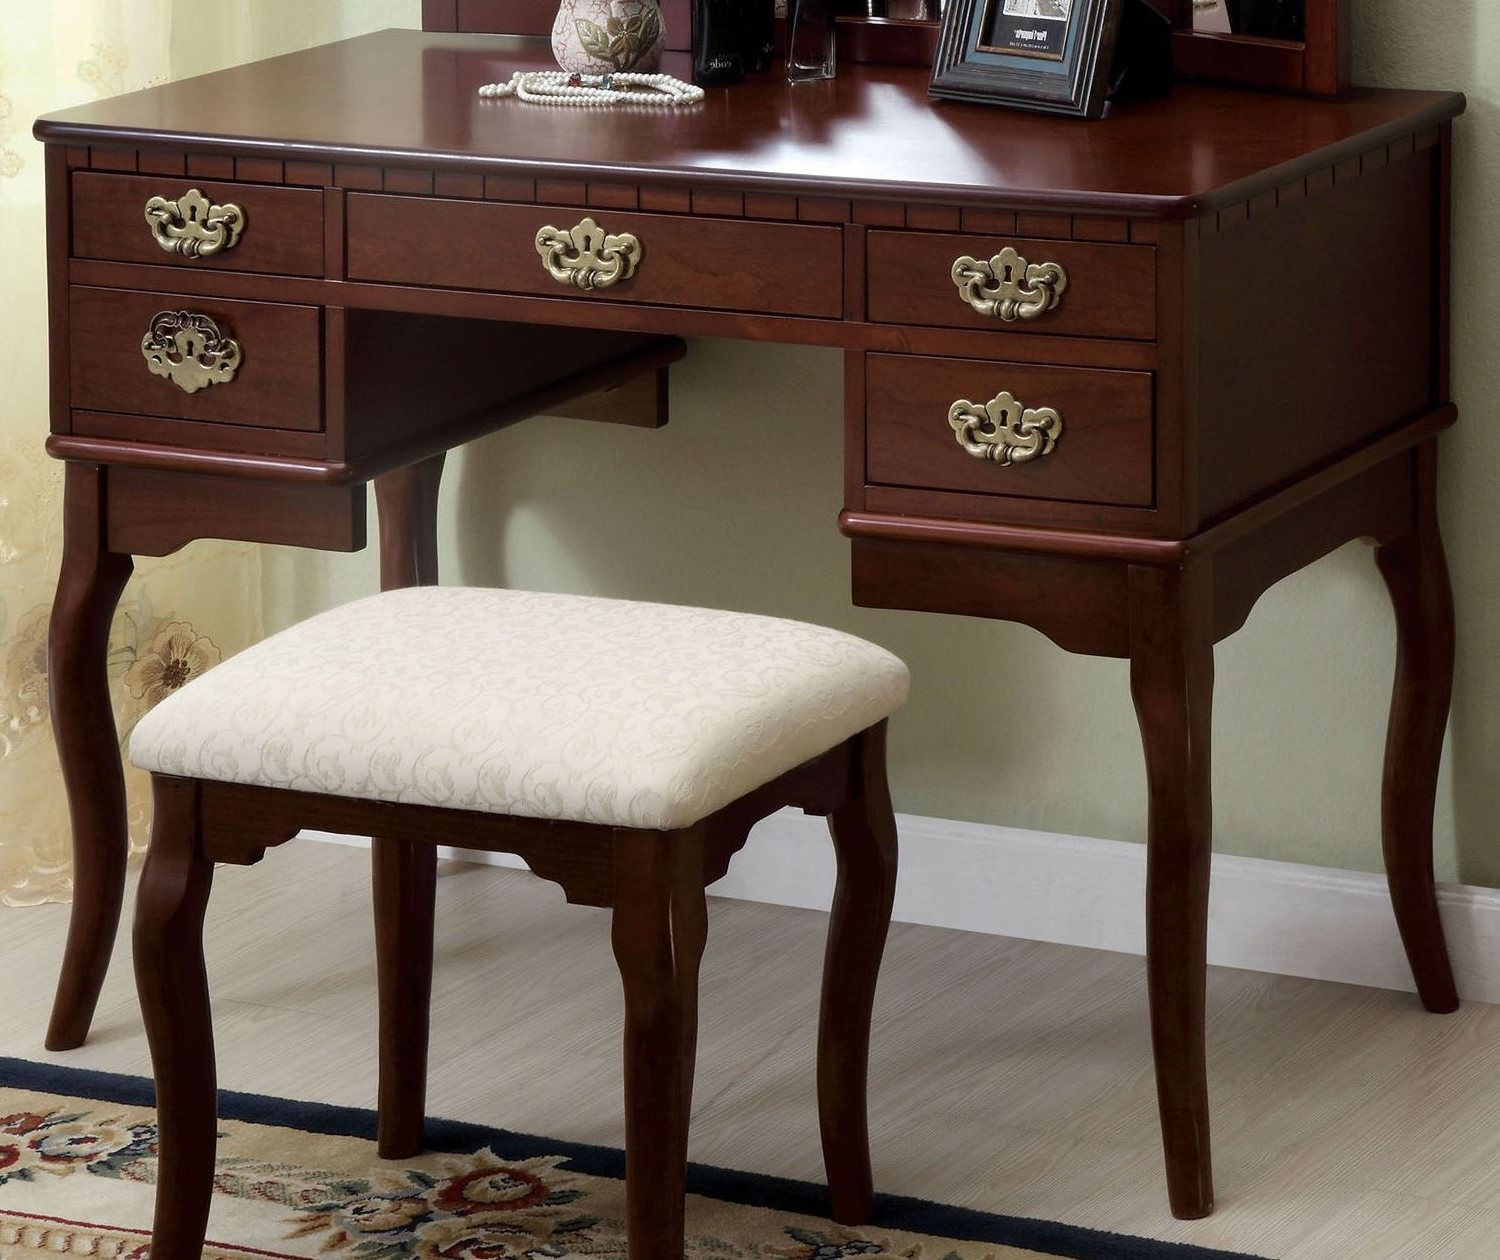 Furniture Of America Ashland Cherry Vanity Table – Ashland In Chari Media Center Tables (View 18 of 20)